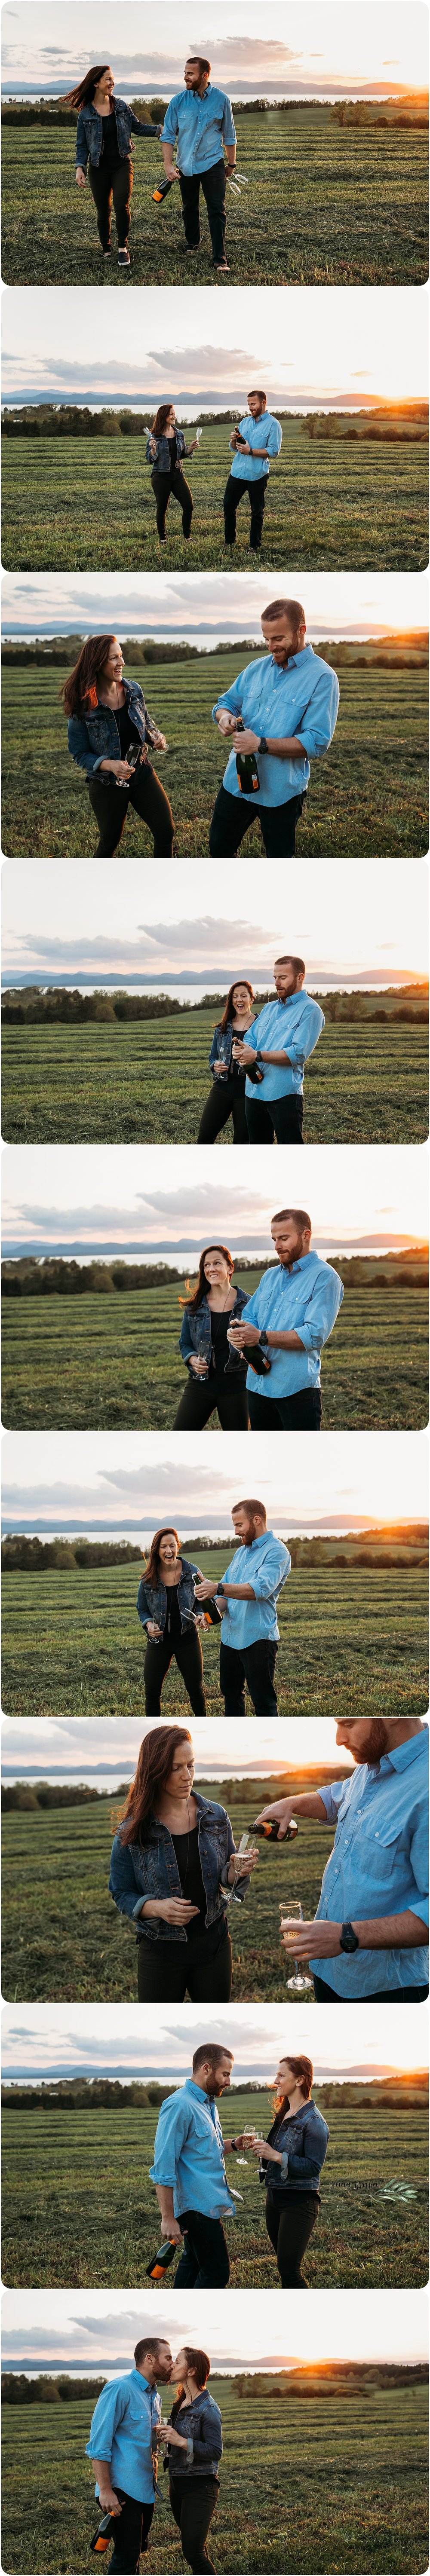 Shelburne Farms Engagement Session Champagne Toast - Jenna Brisson Photography